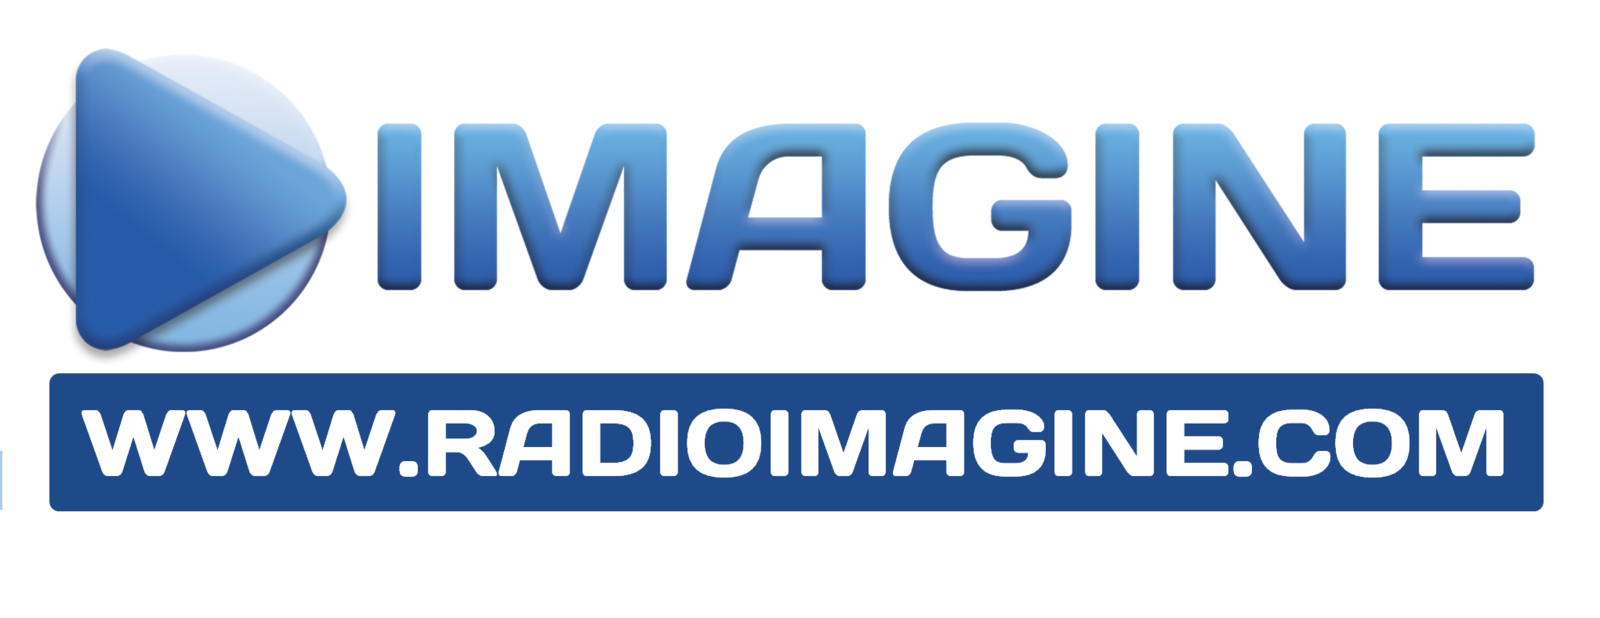 Radio Imagine - Sports Hautes-Alpes : Troisieme Numero